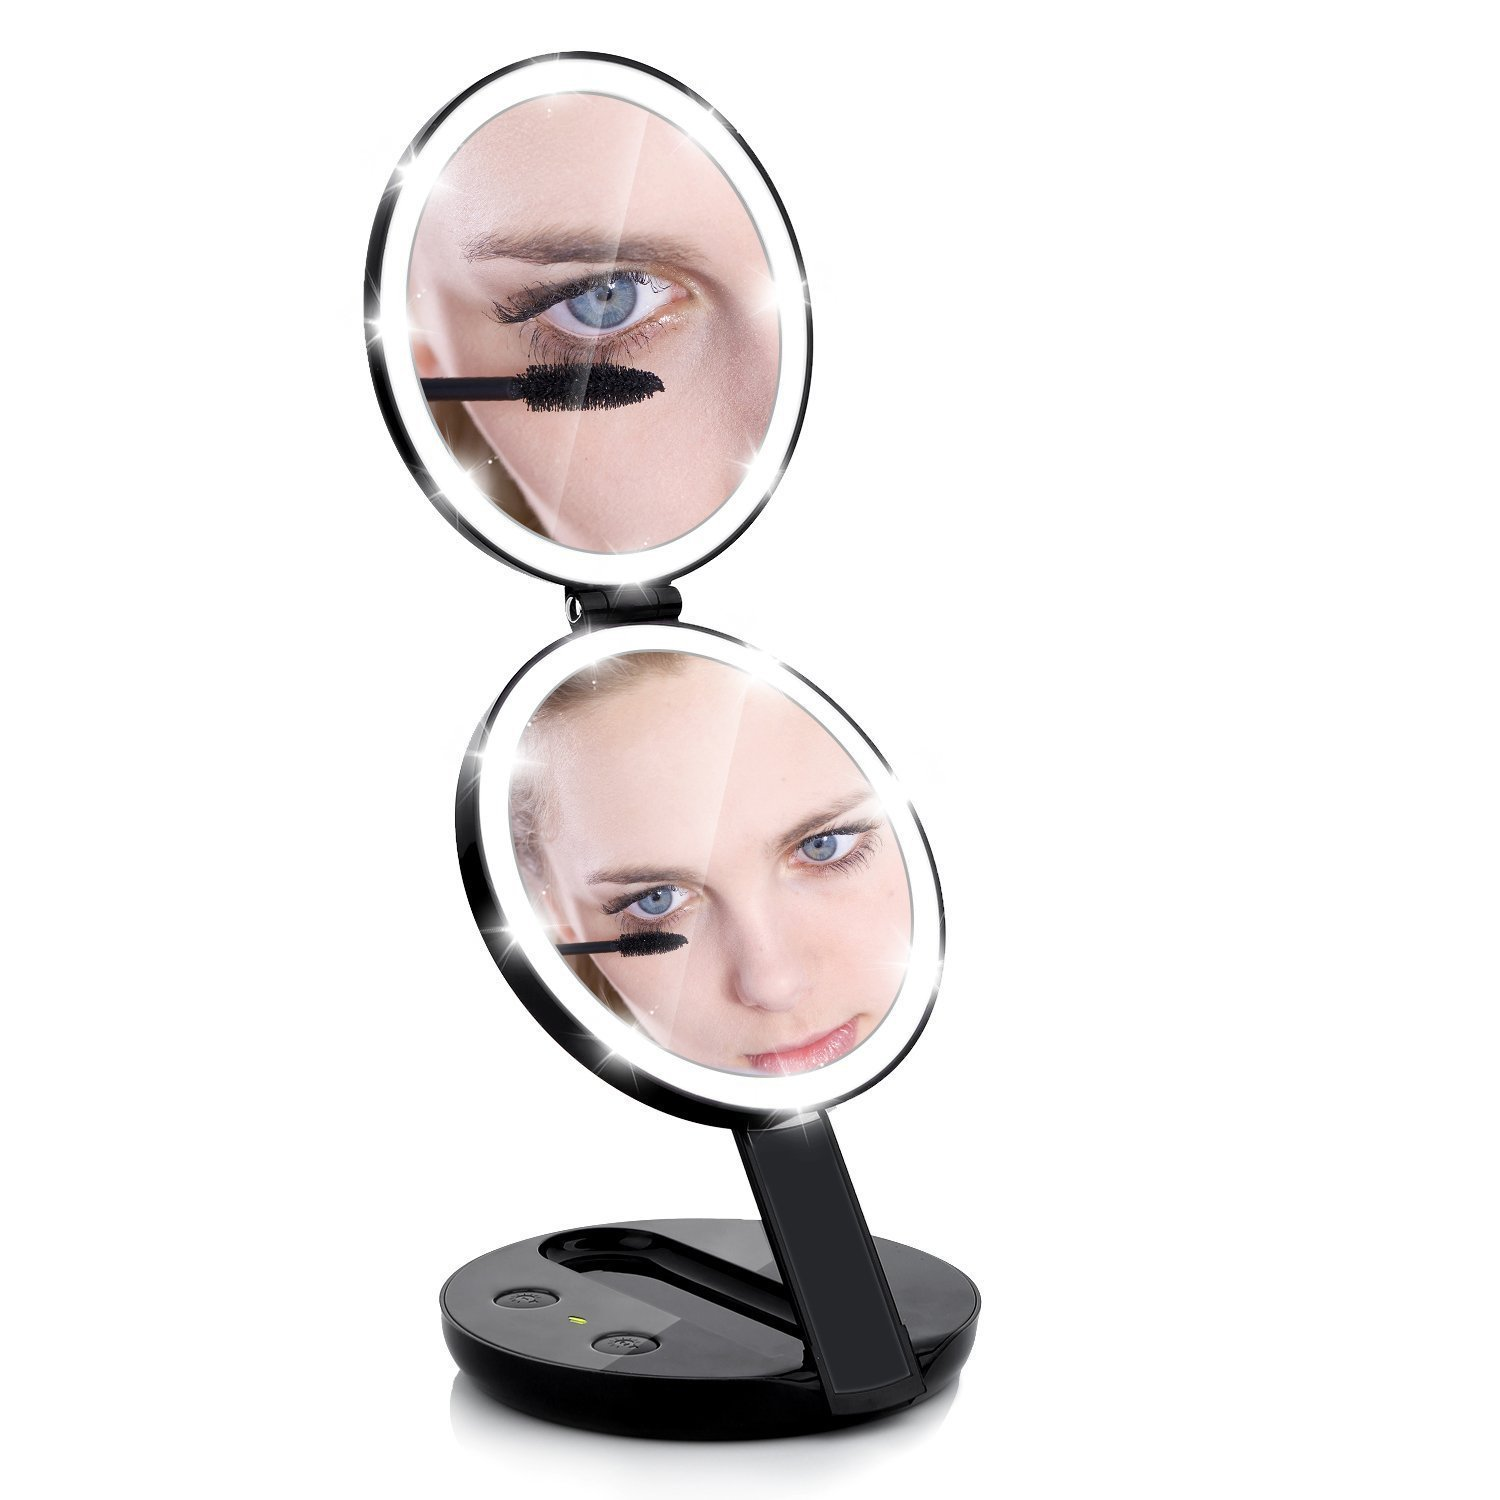 Lighted travel makeup mirror,handheld 1X/10X Vanity Mirror, Illuminated with 16 LED Lights, Small Standing Double Foldable Mirror for Eye Makeup magnified mirrors,Compact for Women Lady Girl (Black)